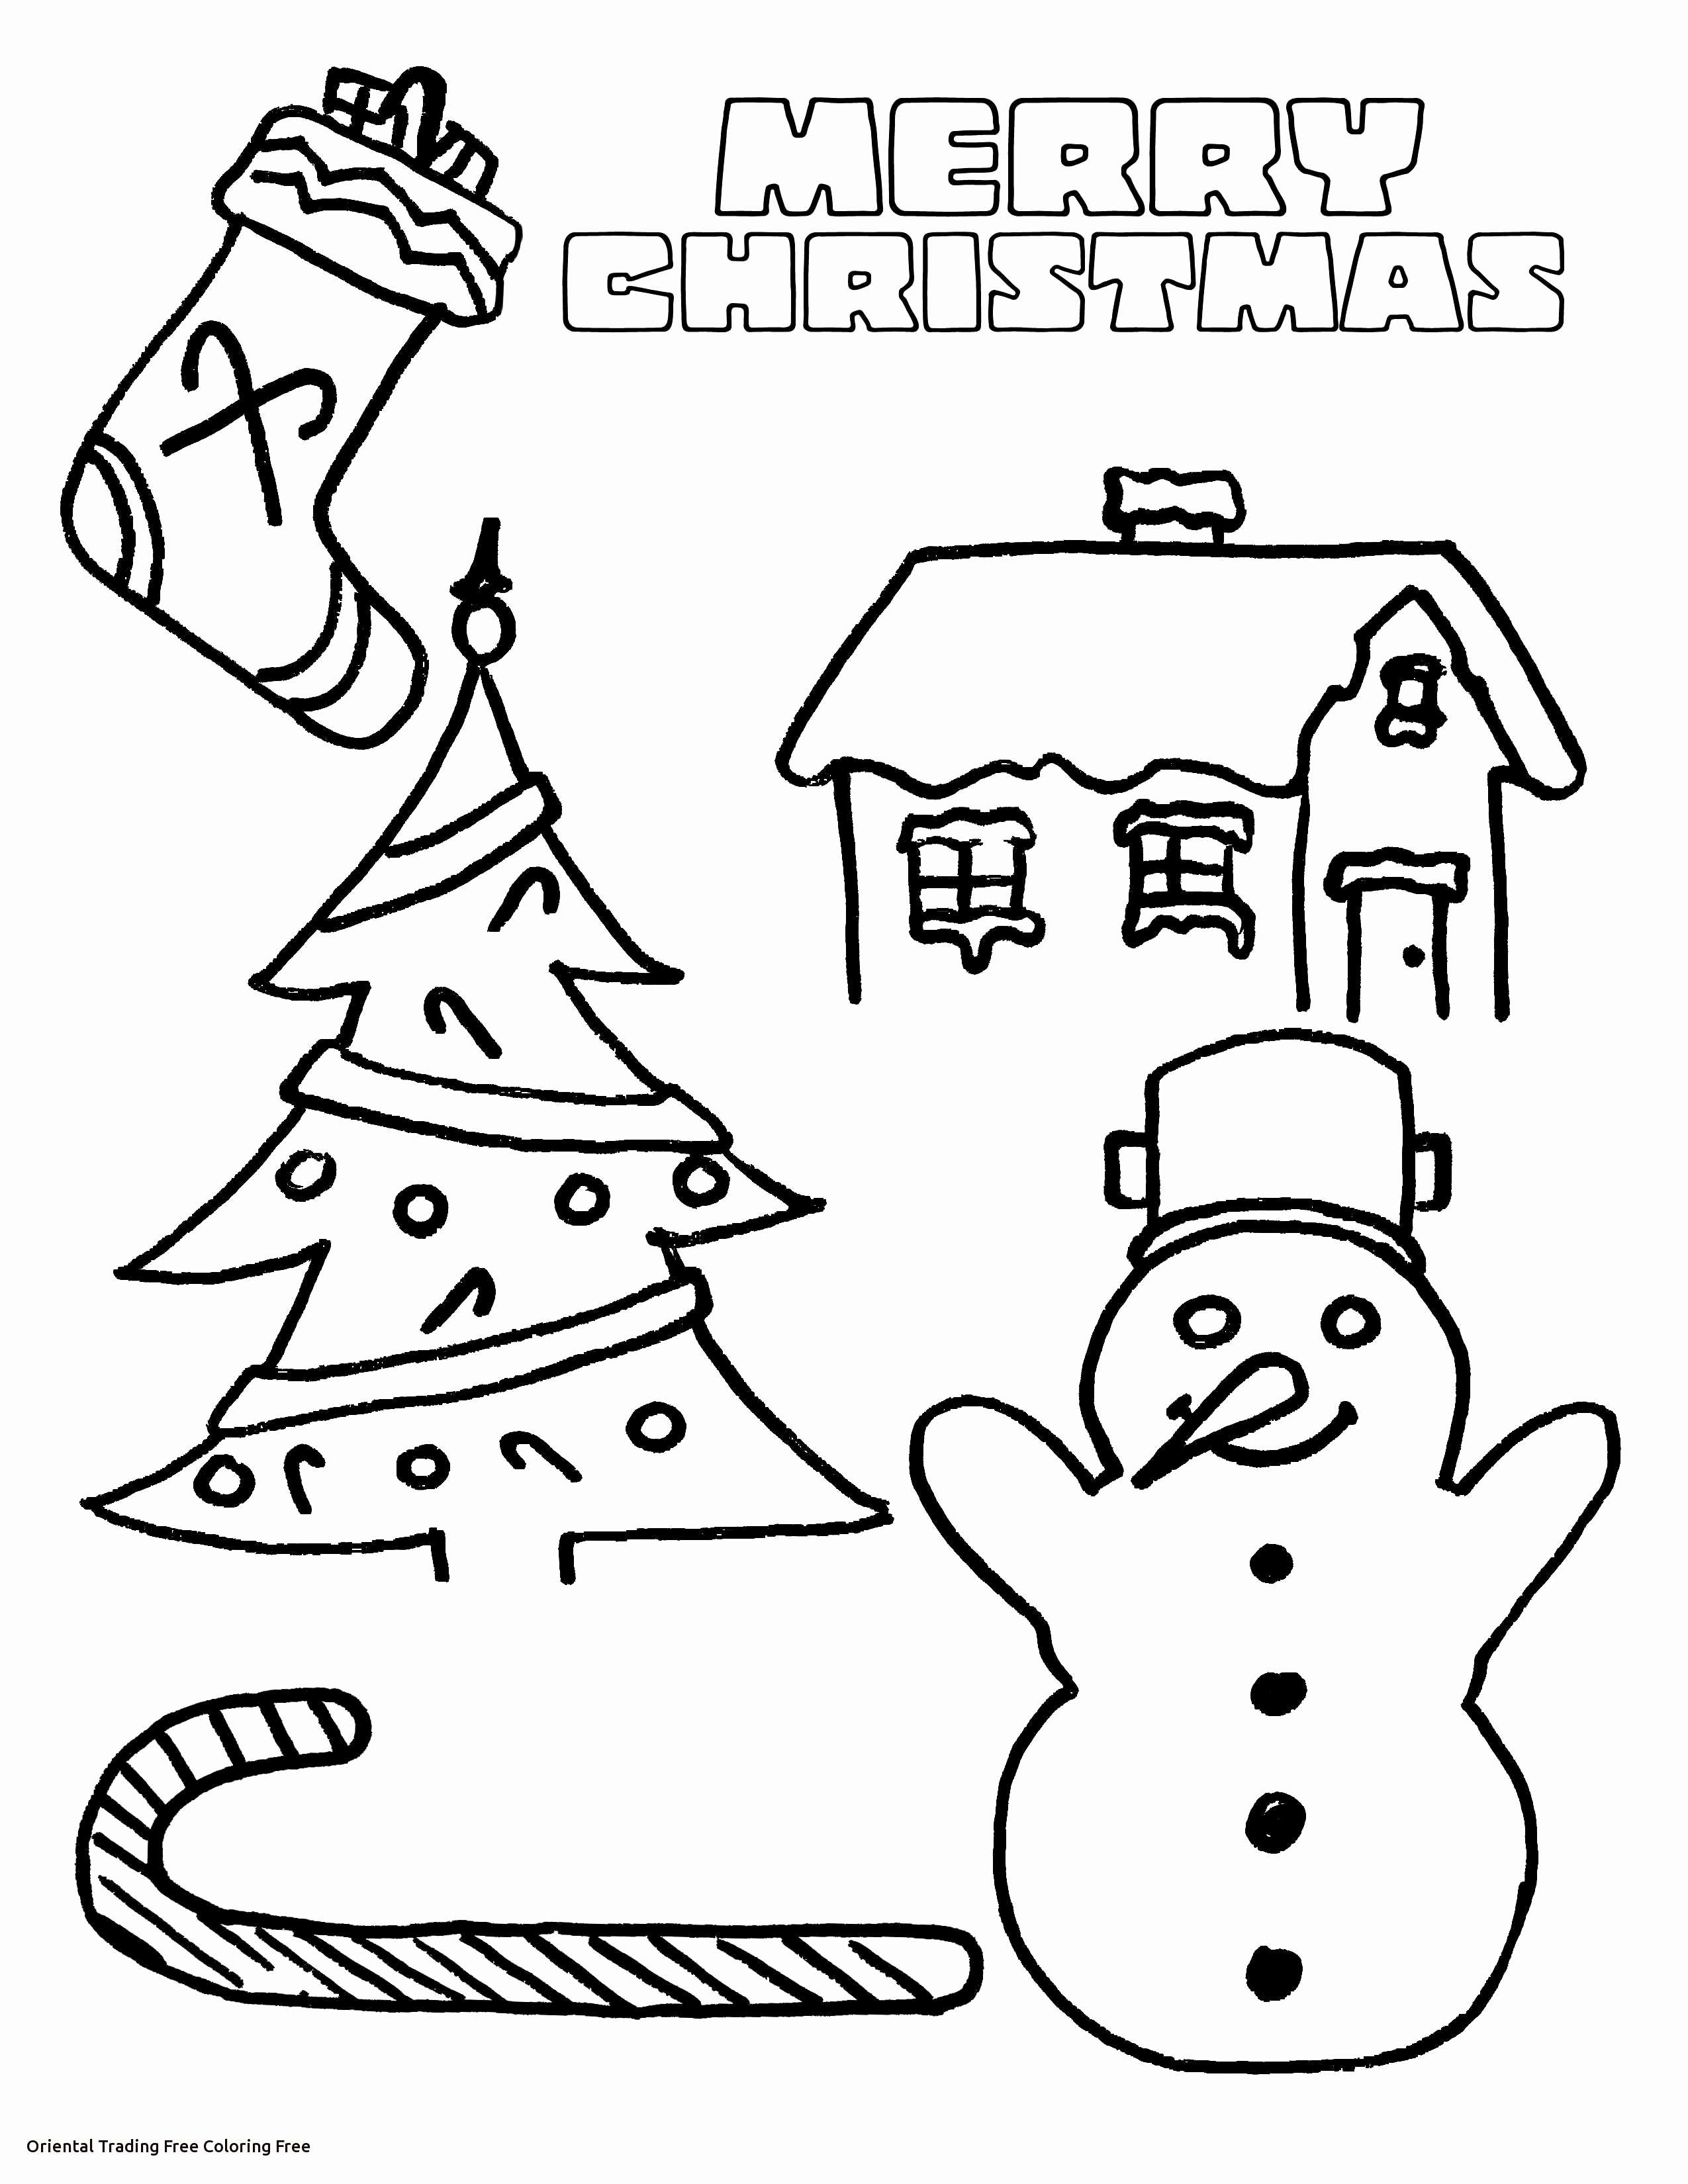 Merry Christmas Coloring Pages For Toddlers With Free Printable